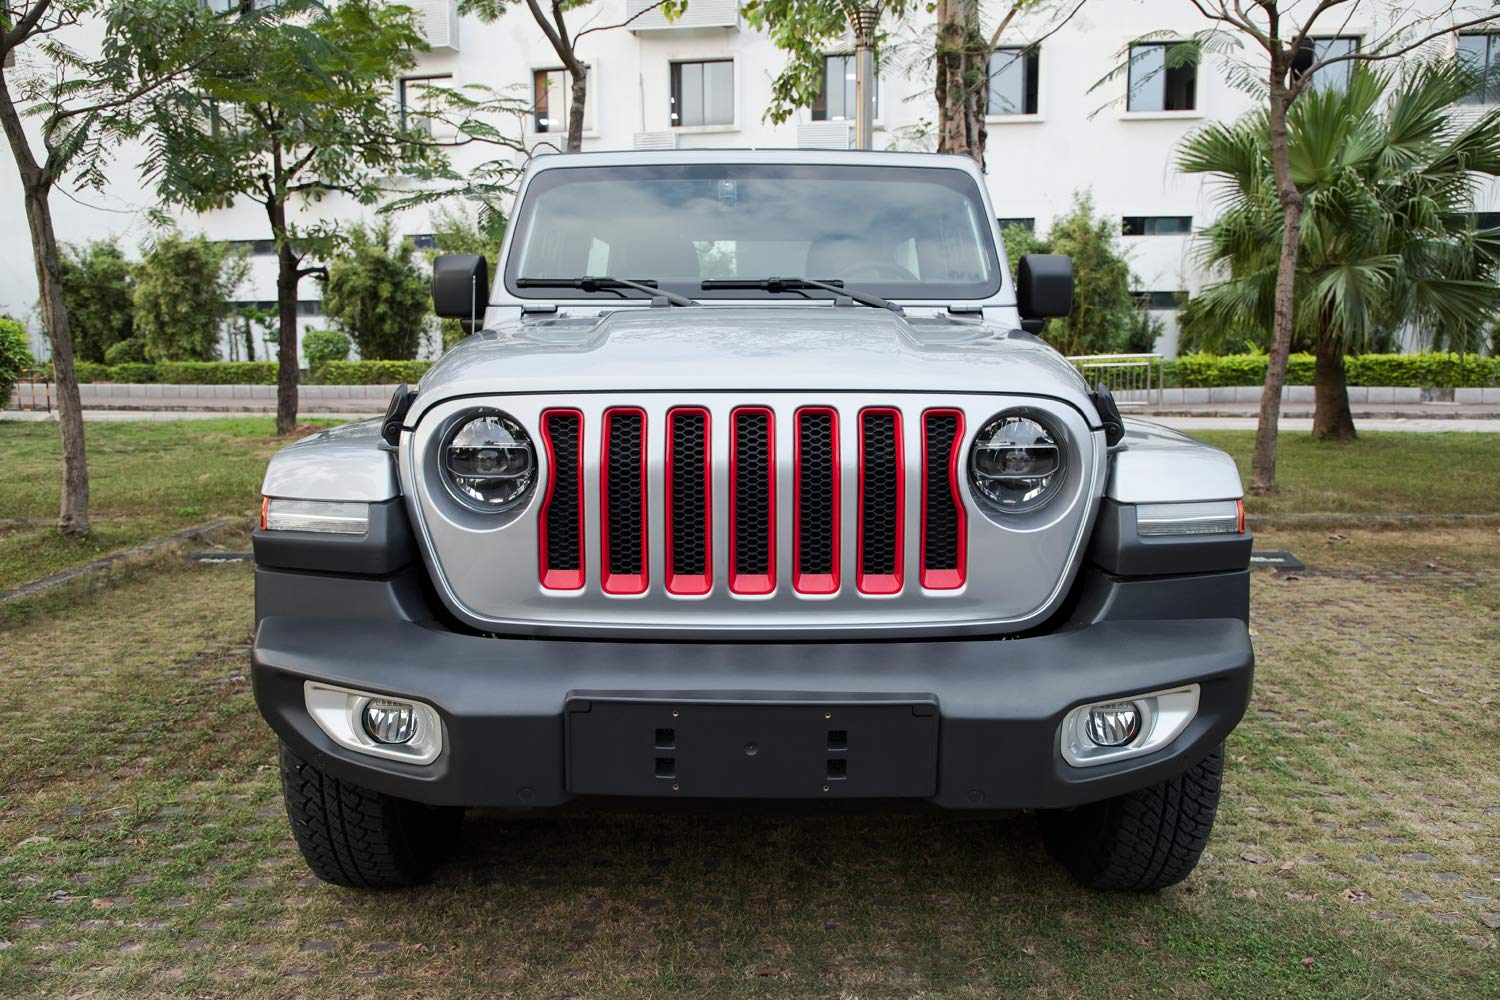 Headlight Turn Light Cover Trim /& Door Hinge Cover 17 Pcs Red Protection Accessories for 2018 2019 Jeep Wrangler JL JLU Sport//Sports Sunluway Front Grille Trim Inserts Grill Cover